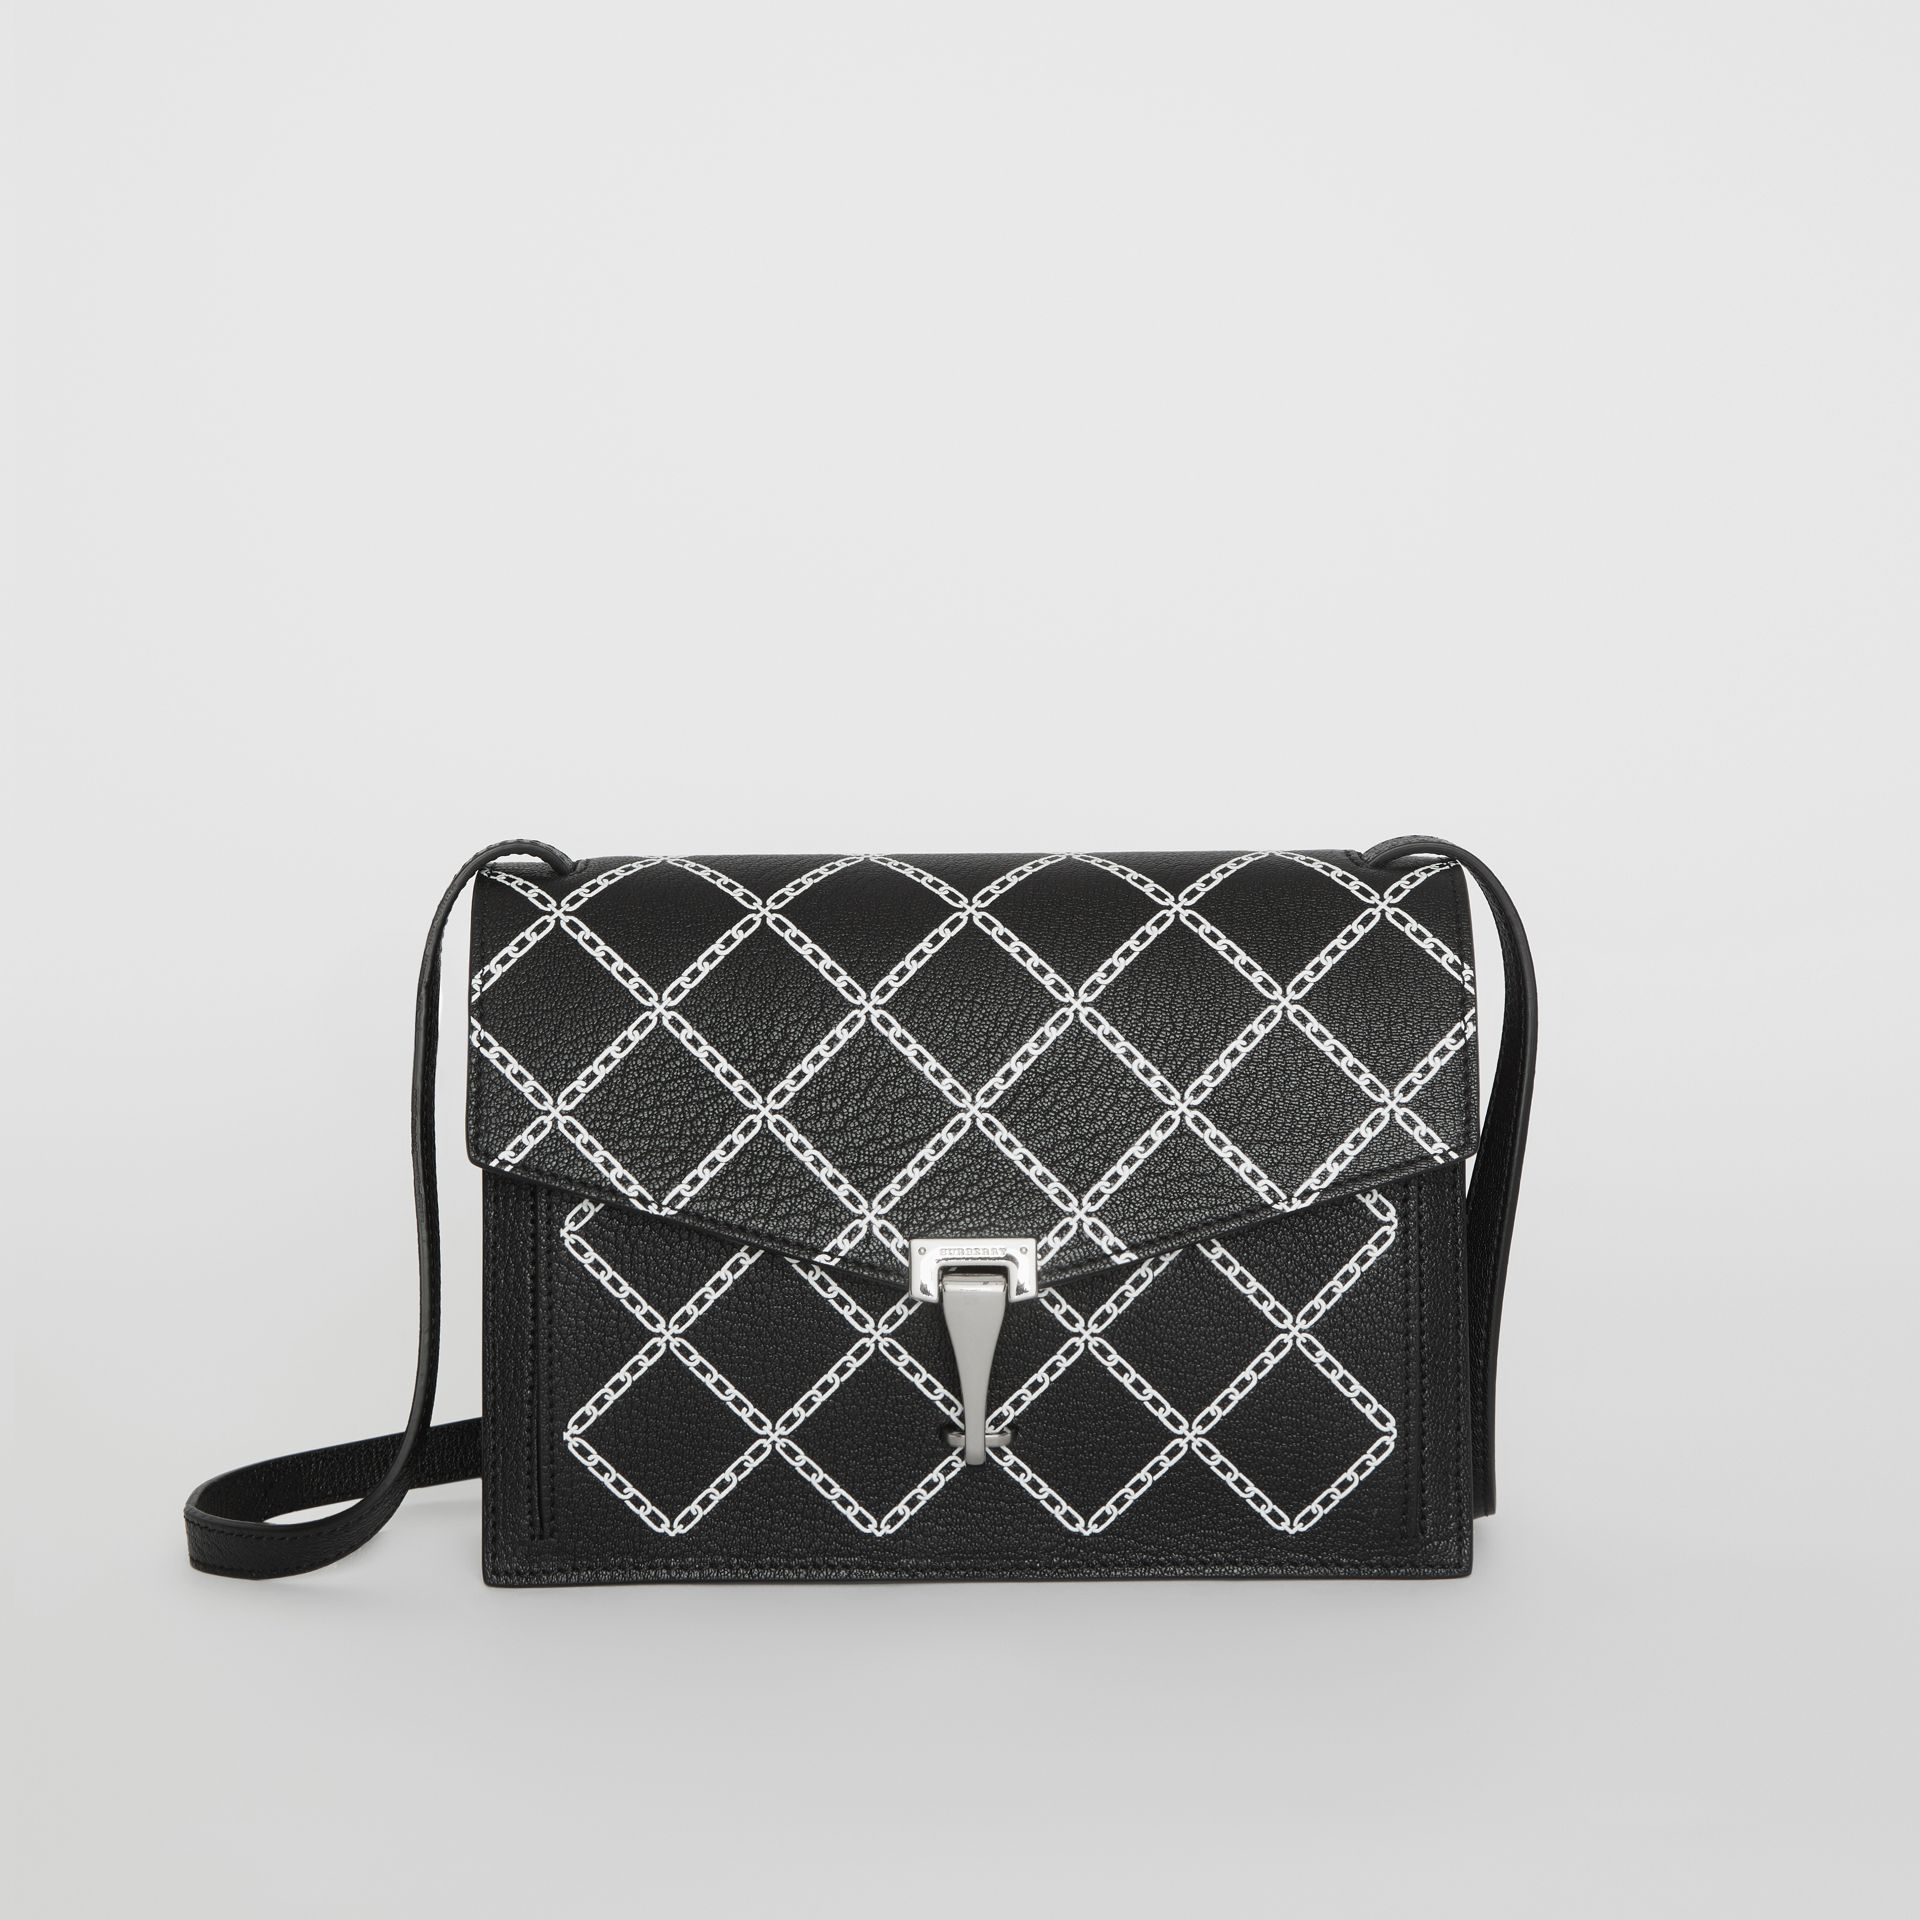 Small Link Print Leather Crossbody Bag in Black - Women | Burberry United Kingdom - gallery image 0